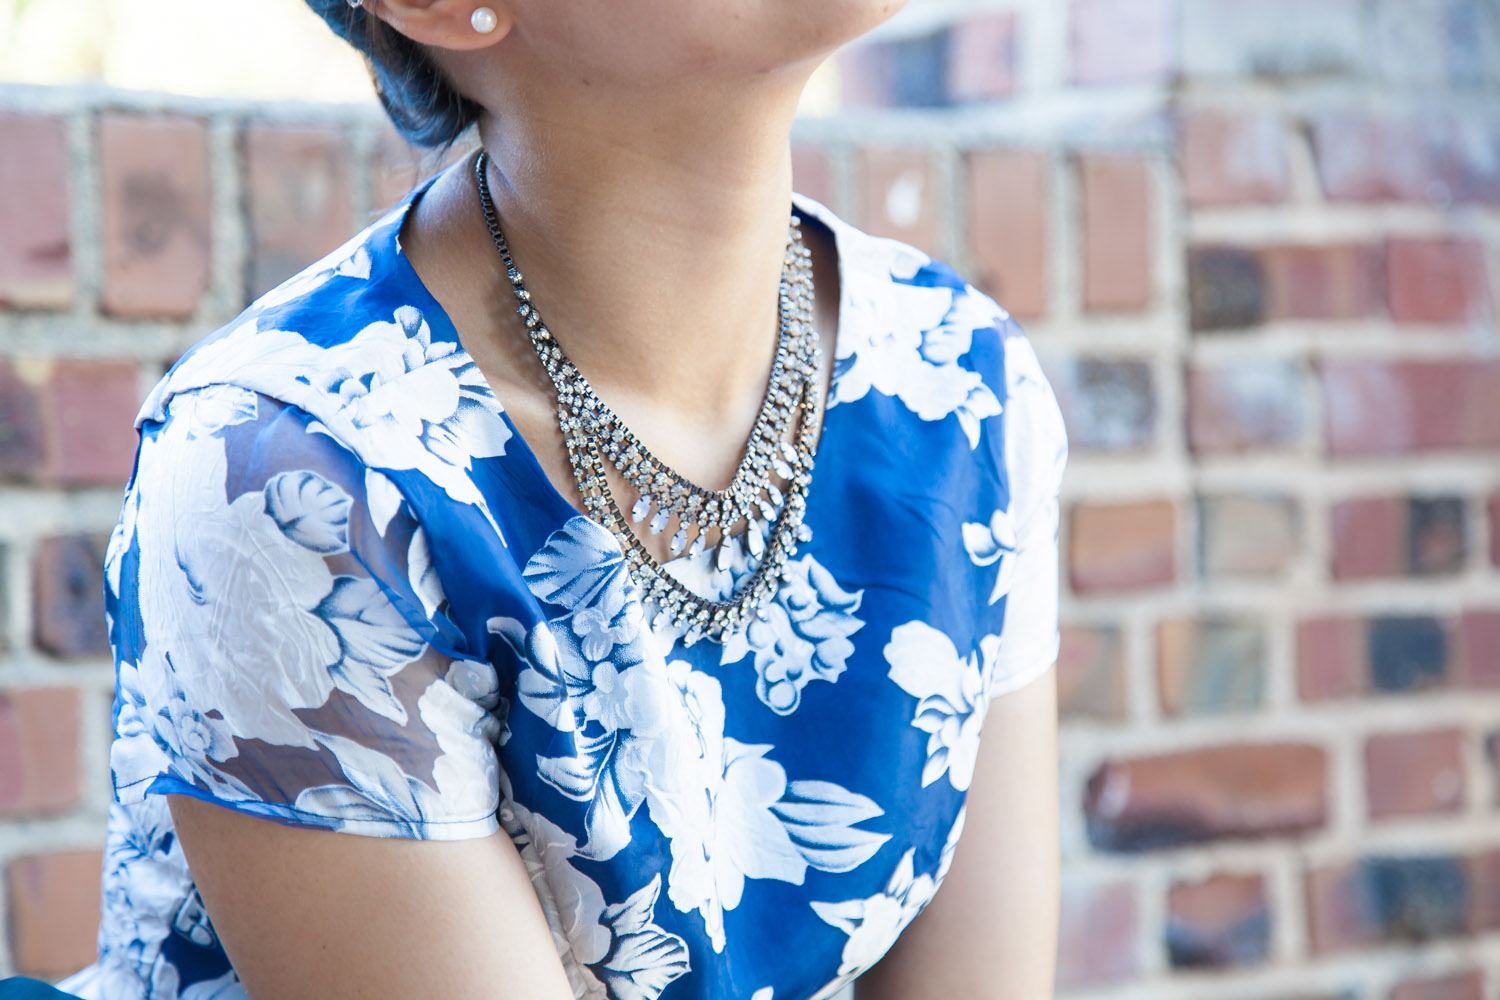 Sparkling Statement Necklace | via The Chic Diary